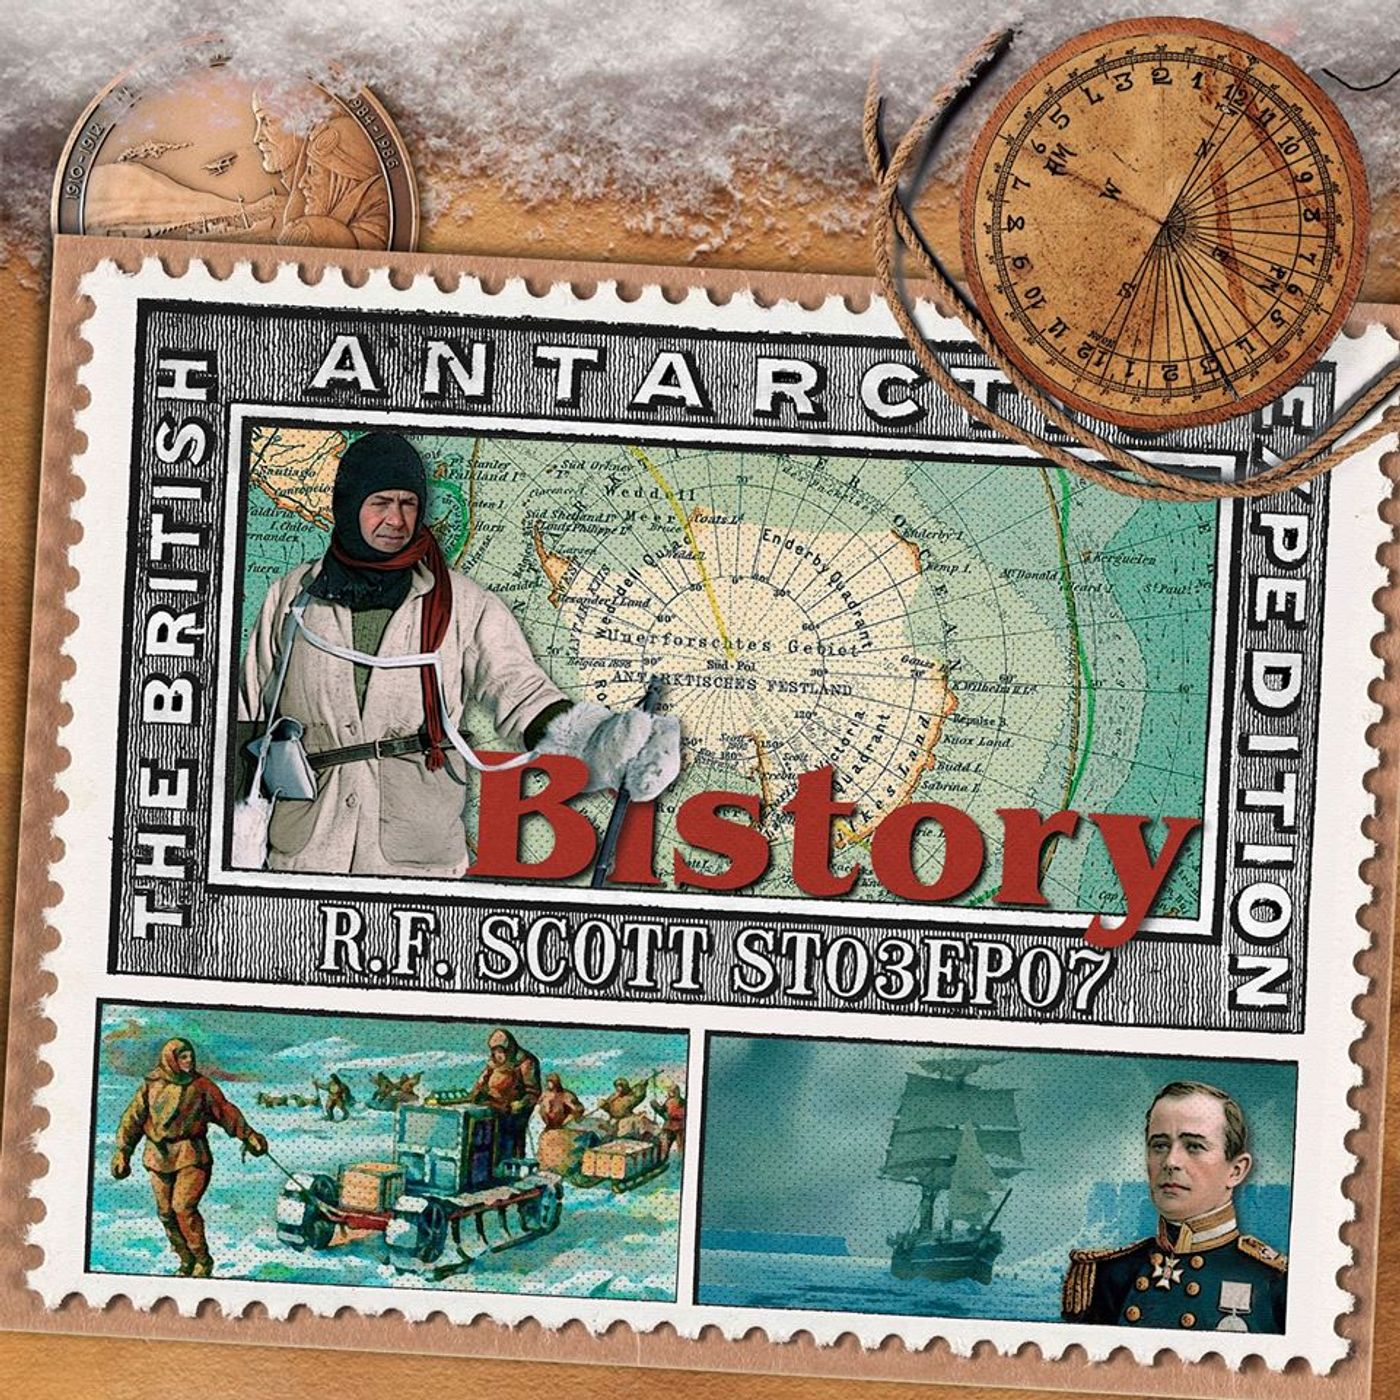 Bistory S03E07 Robert Falcon Scott